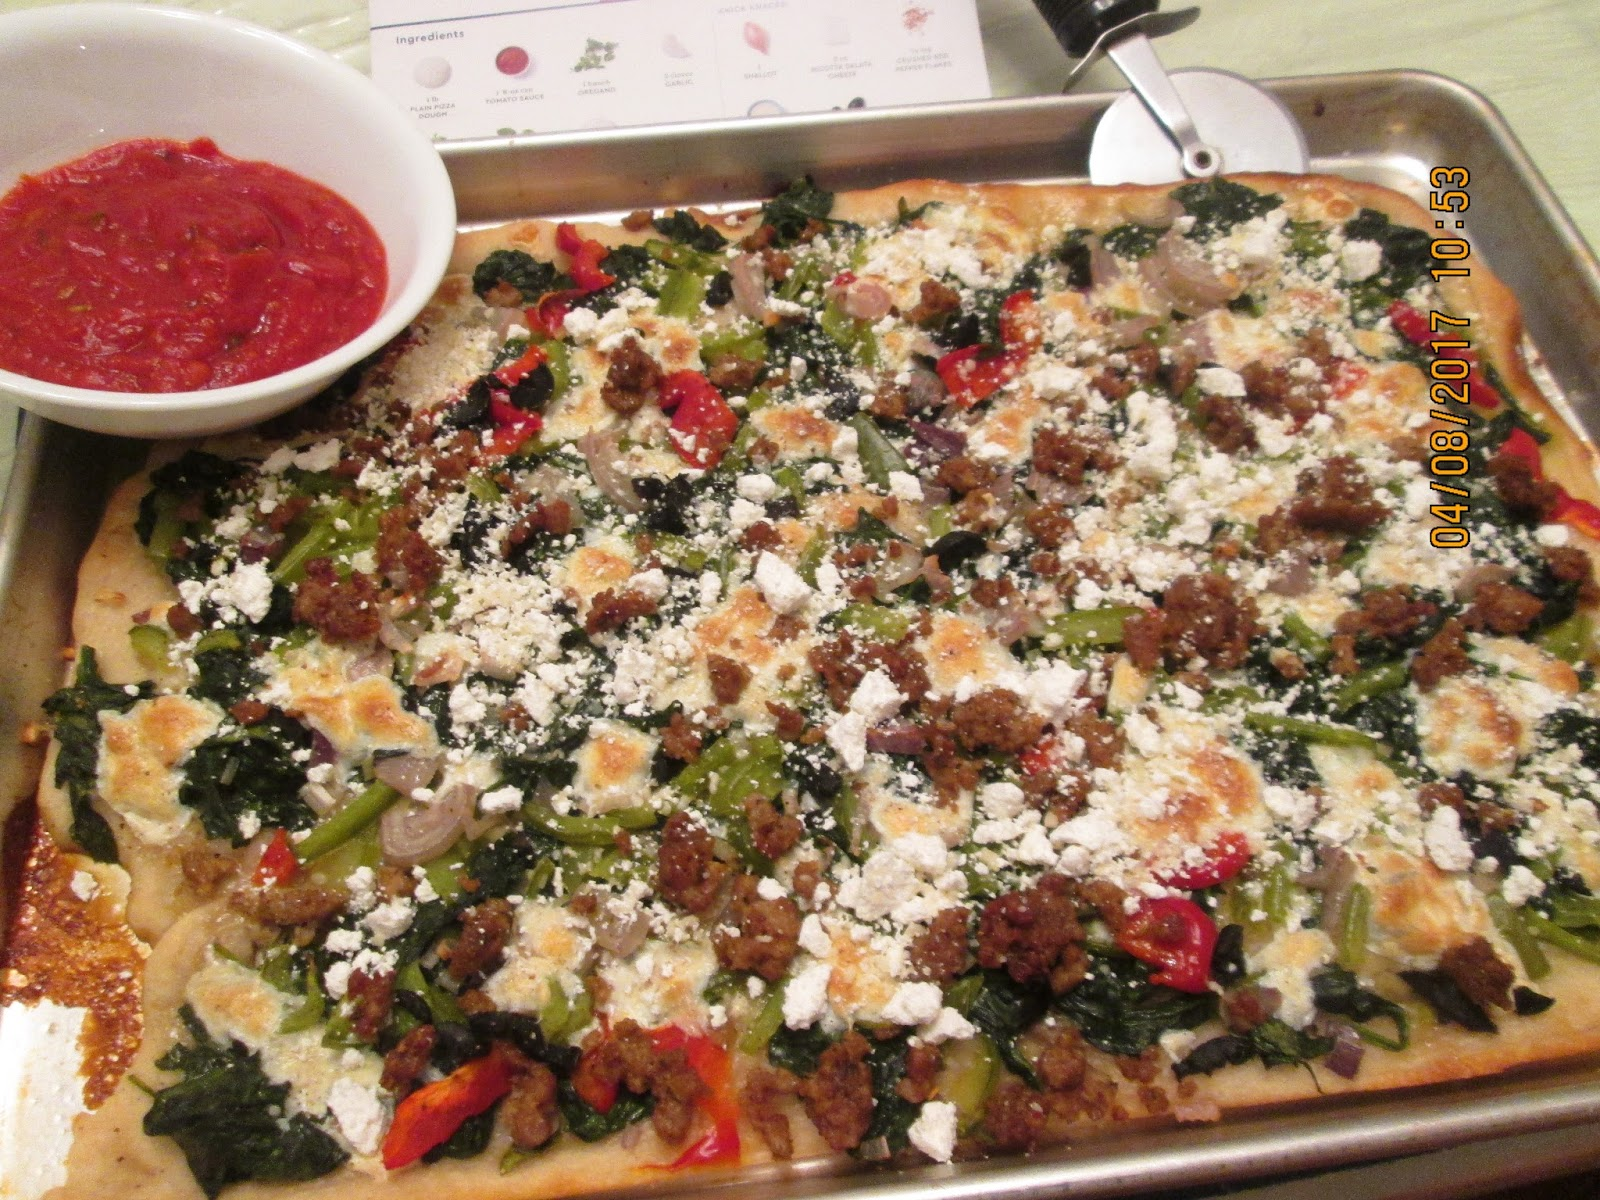 Blue apron spinach pizza - I Have Not Talked About Blue Apron For Quite Awhile That Is Because I Have Not Gotten A Blue Apron Box Since The Last Week Of December Saving Money And